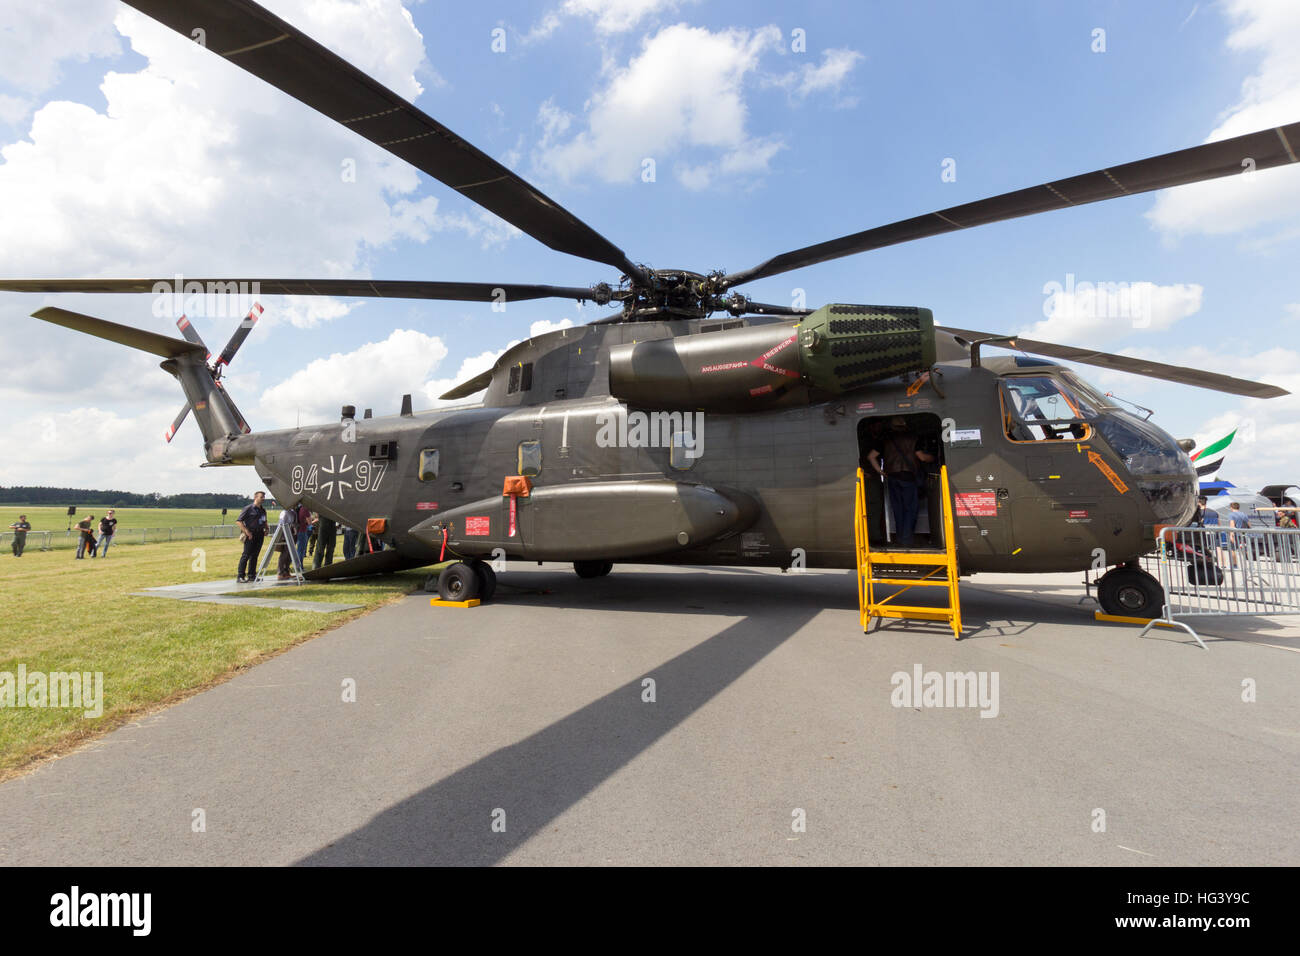 German army Sikorsky CH-53 Stallion transport helicopter on display at the ILA airshow at Berlin Schoneveld airport. - Stock Image